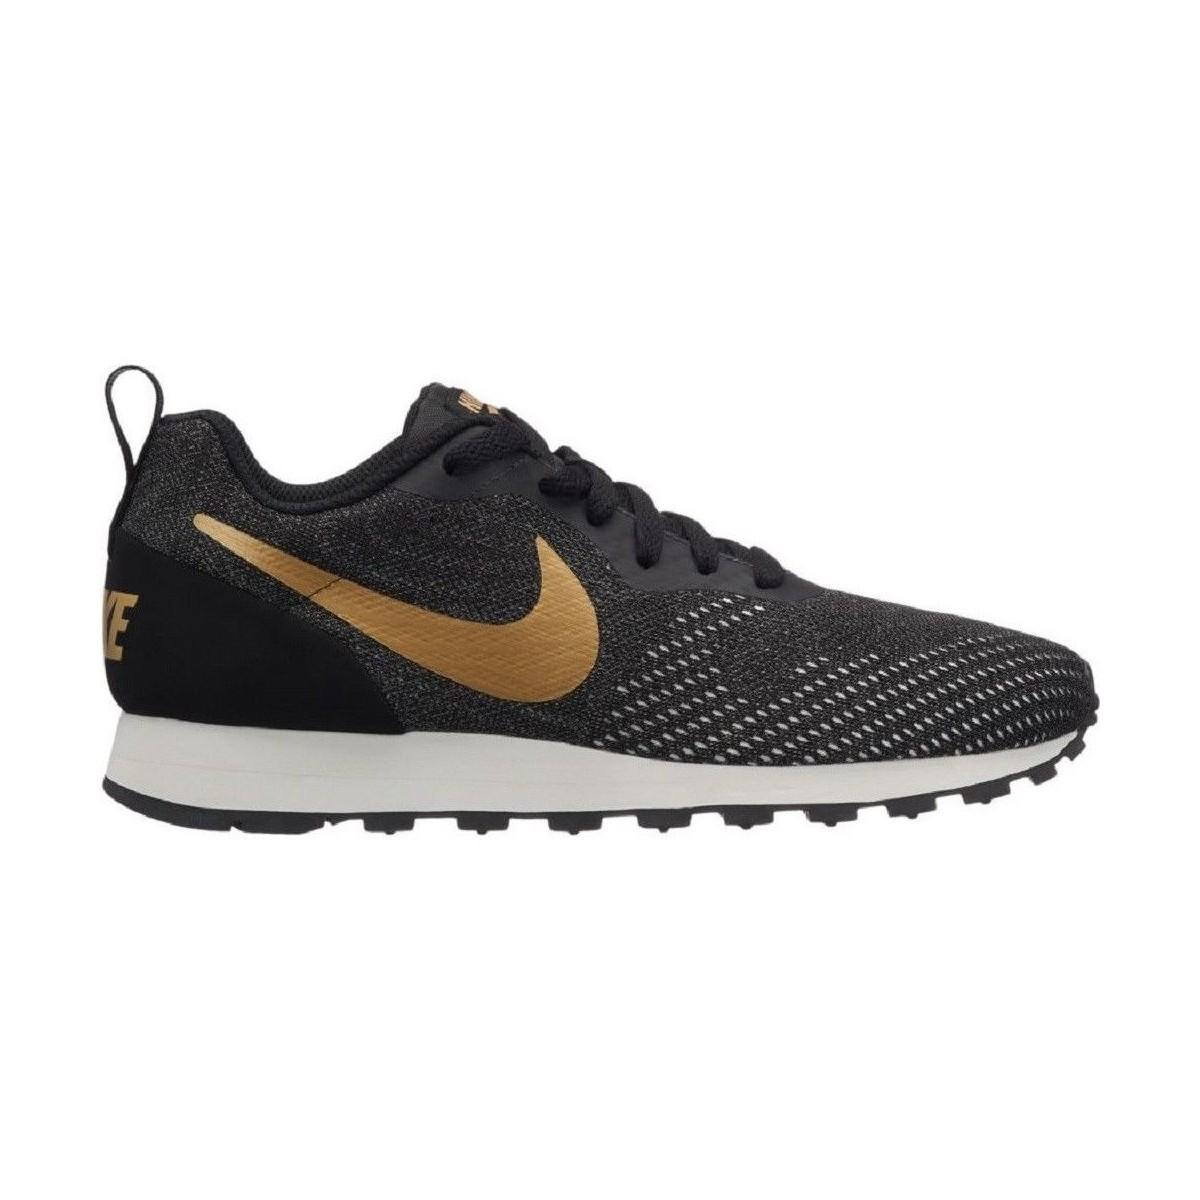 huge selection of 1f55a 9b7dd Nike. Md Runner 2 Eng Mesh 916797 007 Women s Shoes (trainers) In Black